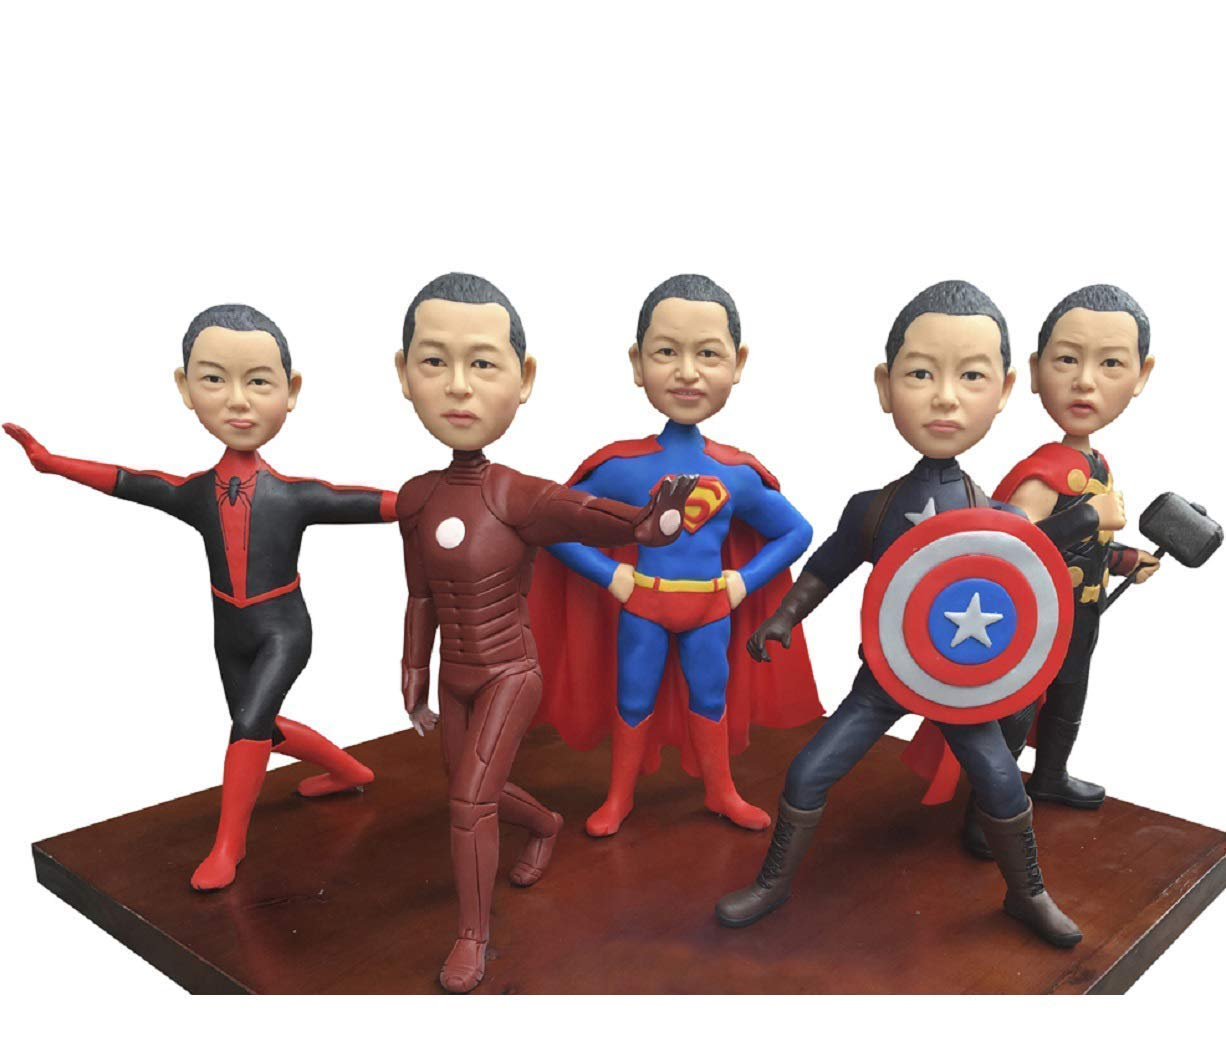 Custom Superhero Bobblehead Personalized Wedding Gifts Based On Customers Photos One Person,DHL Expedited Shipping Service